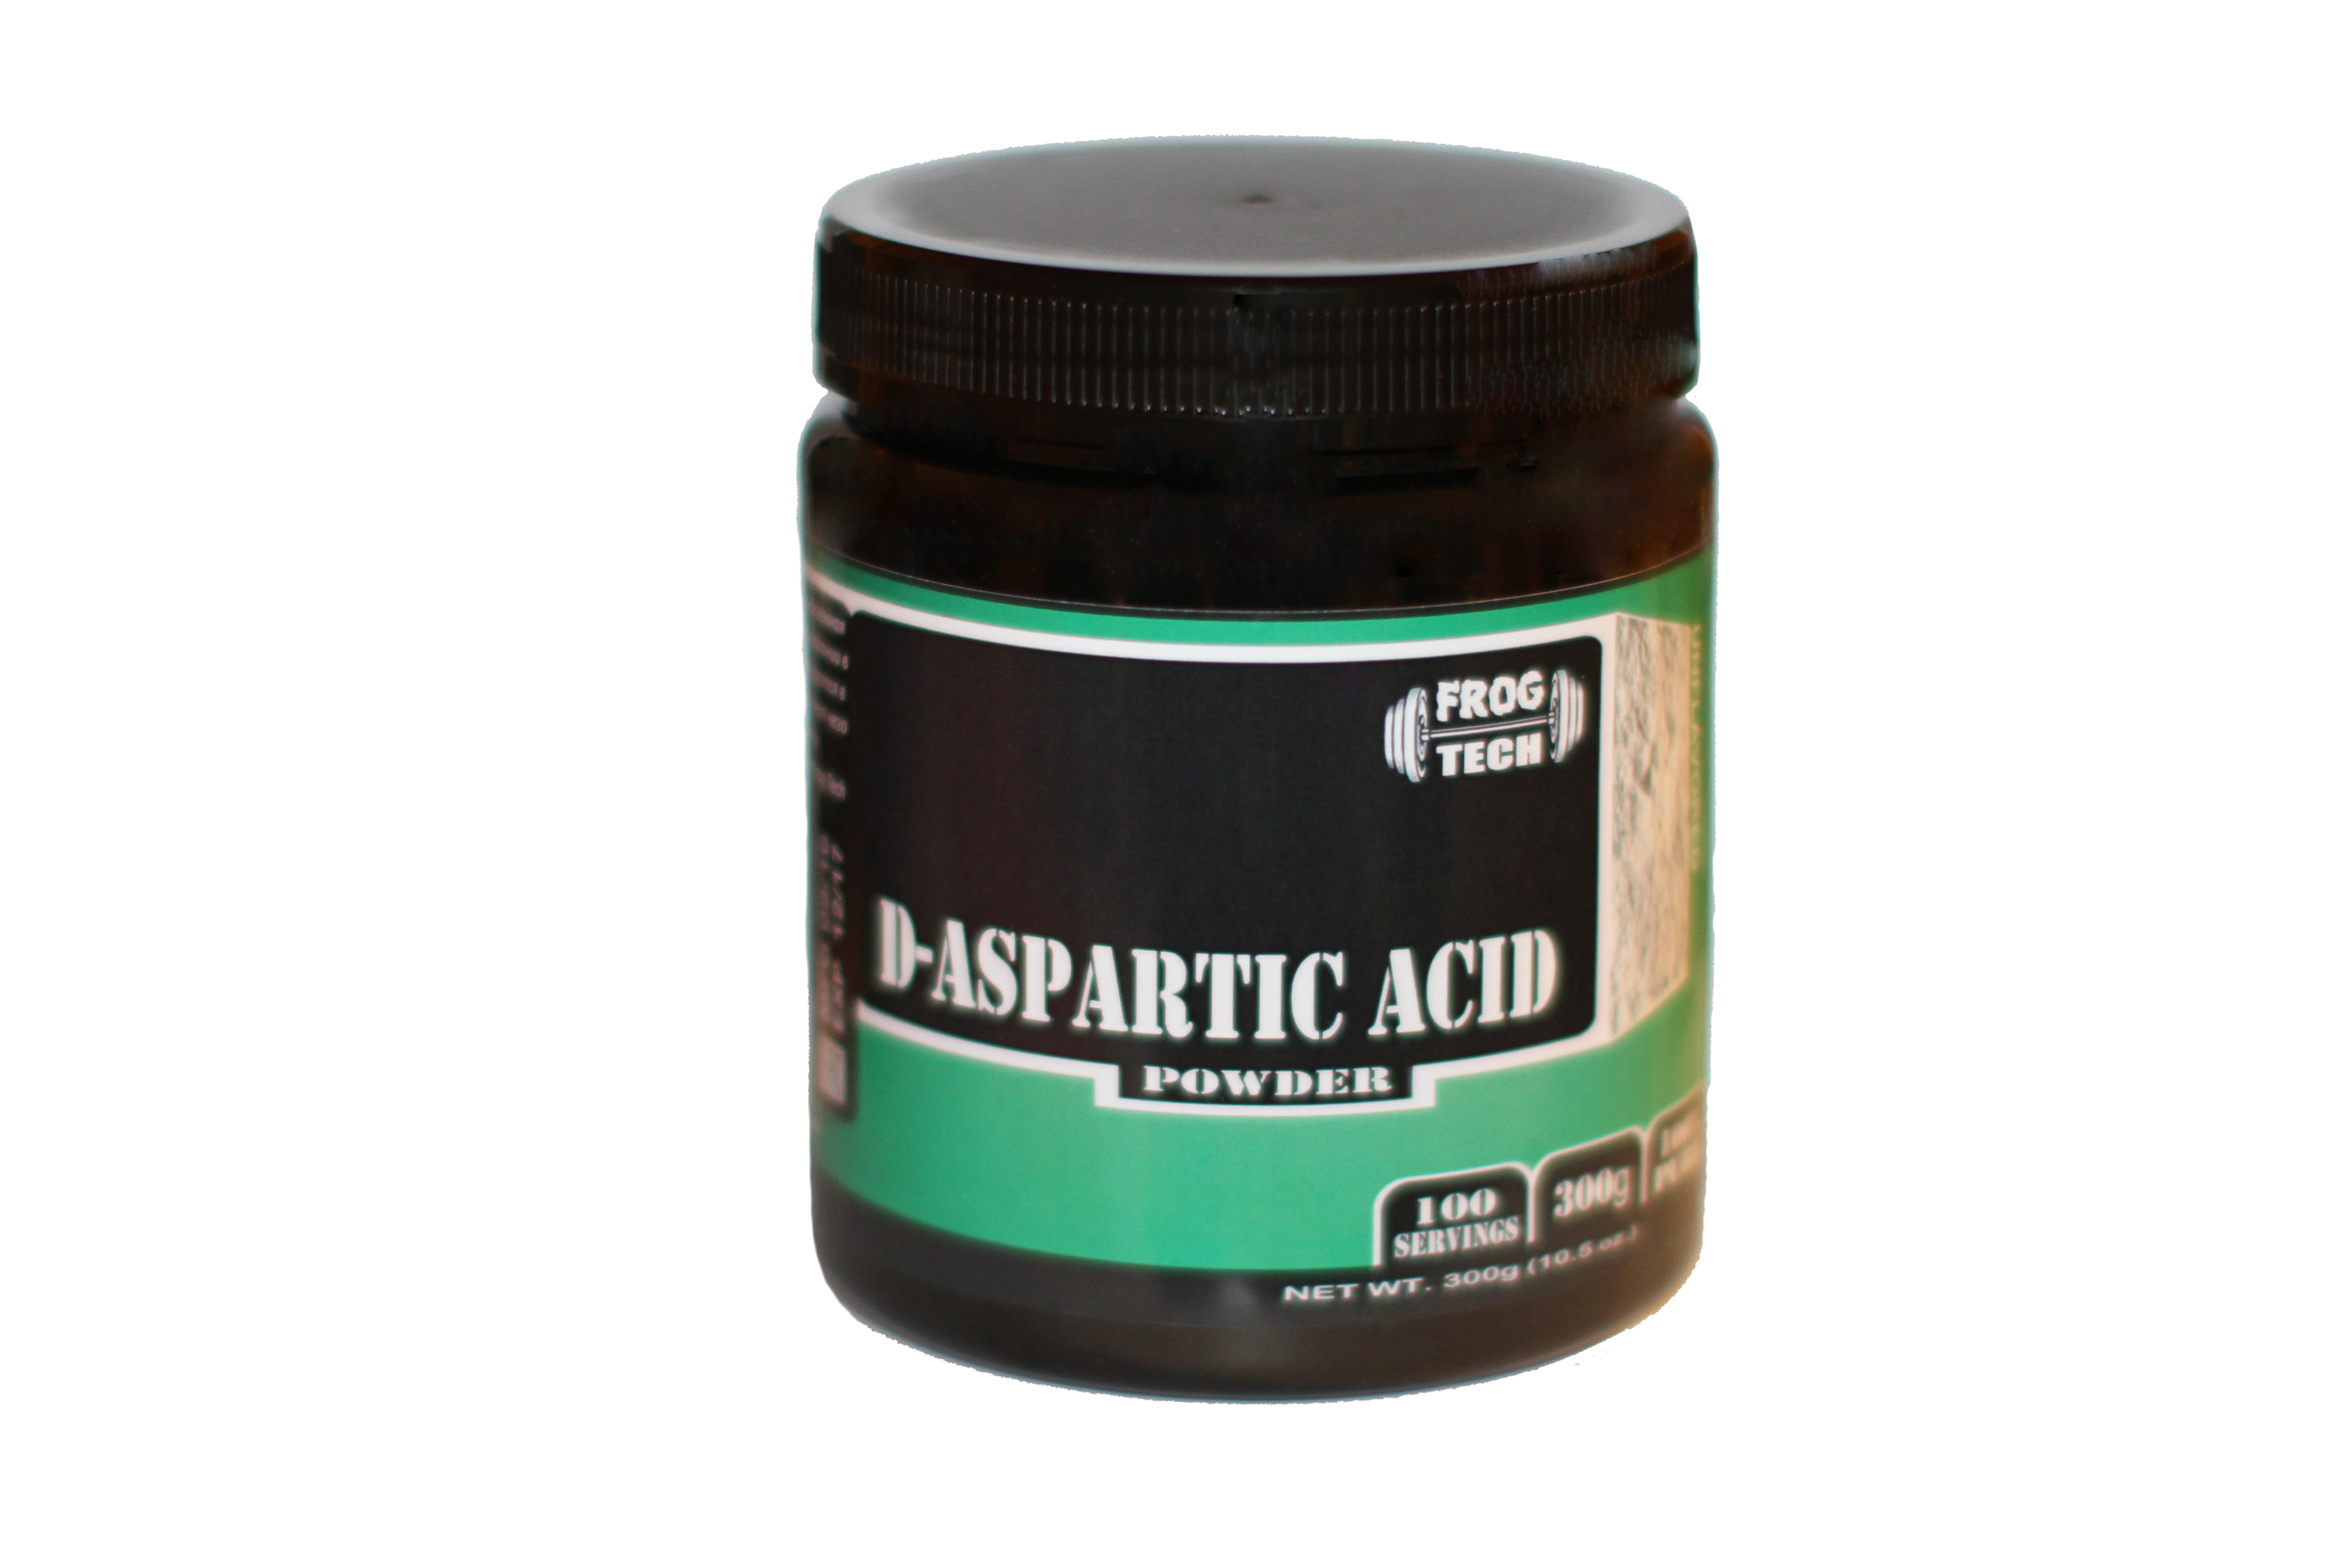 Frog Tech D-aspartic acid